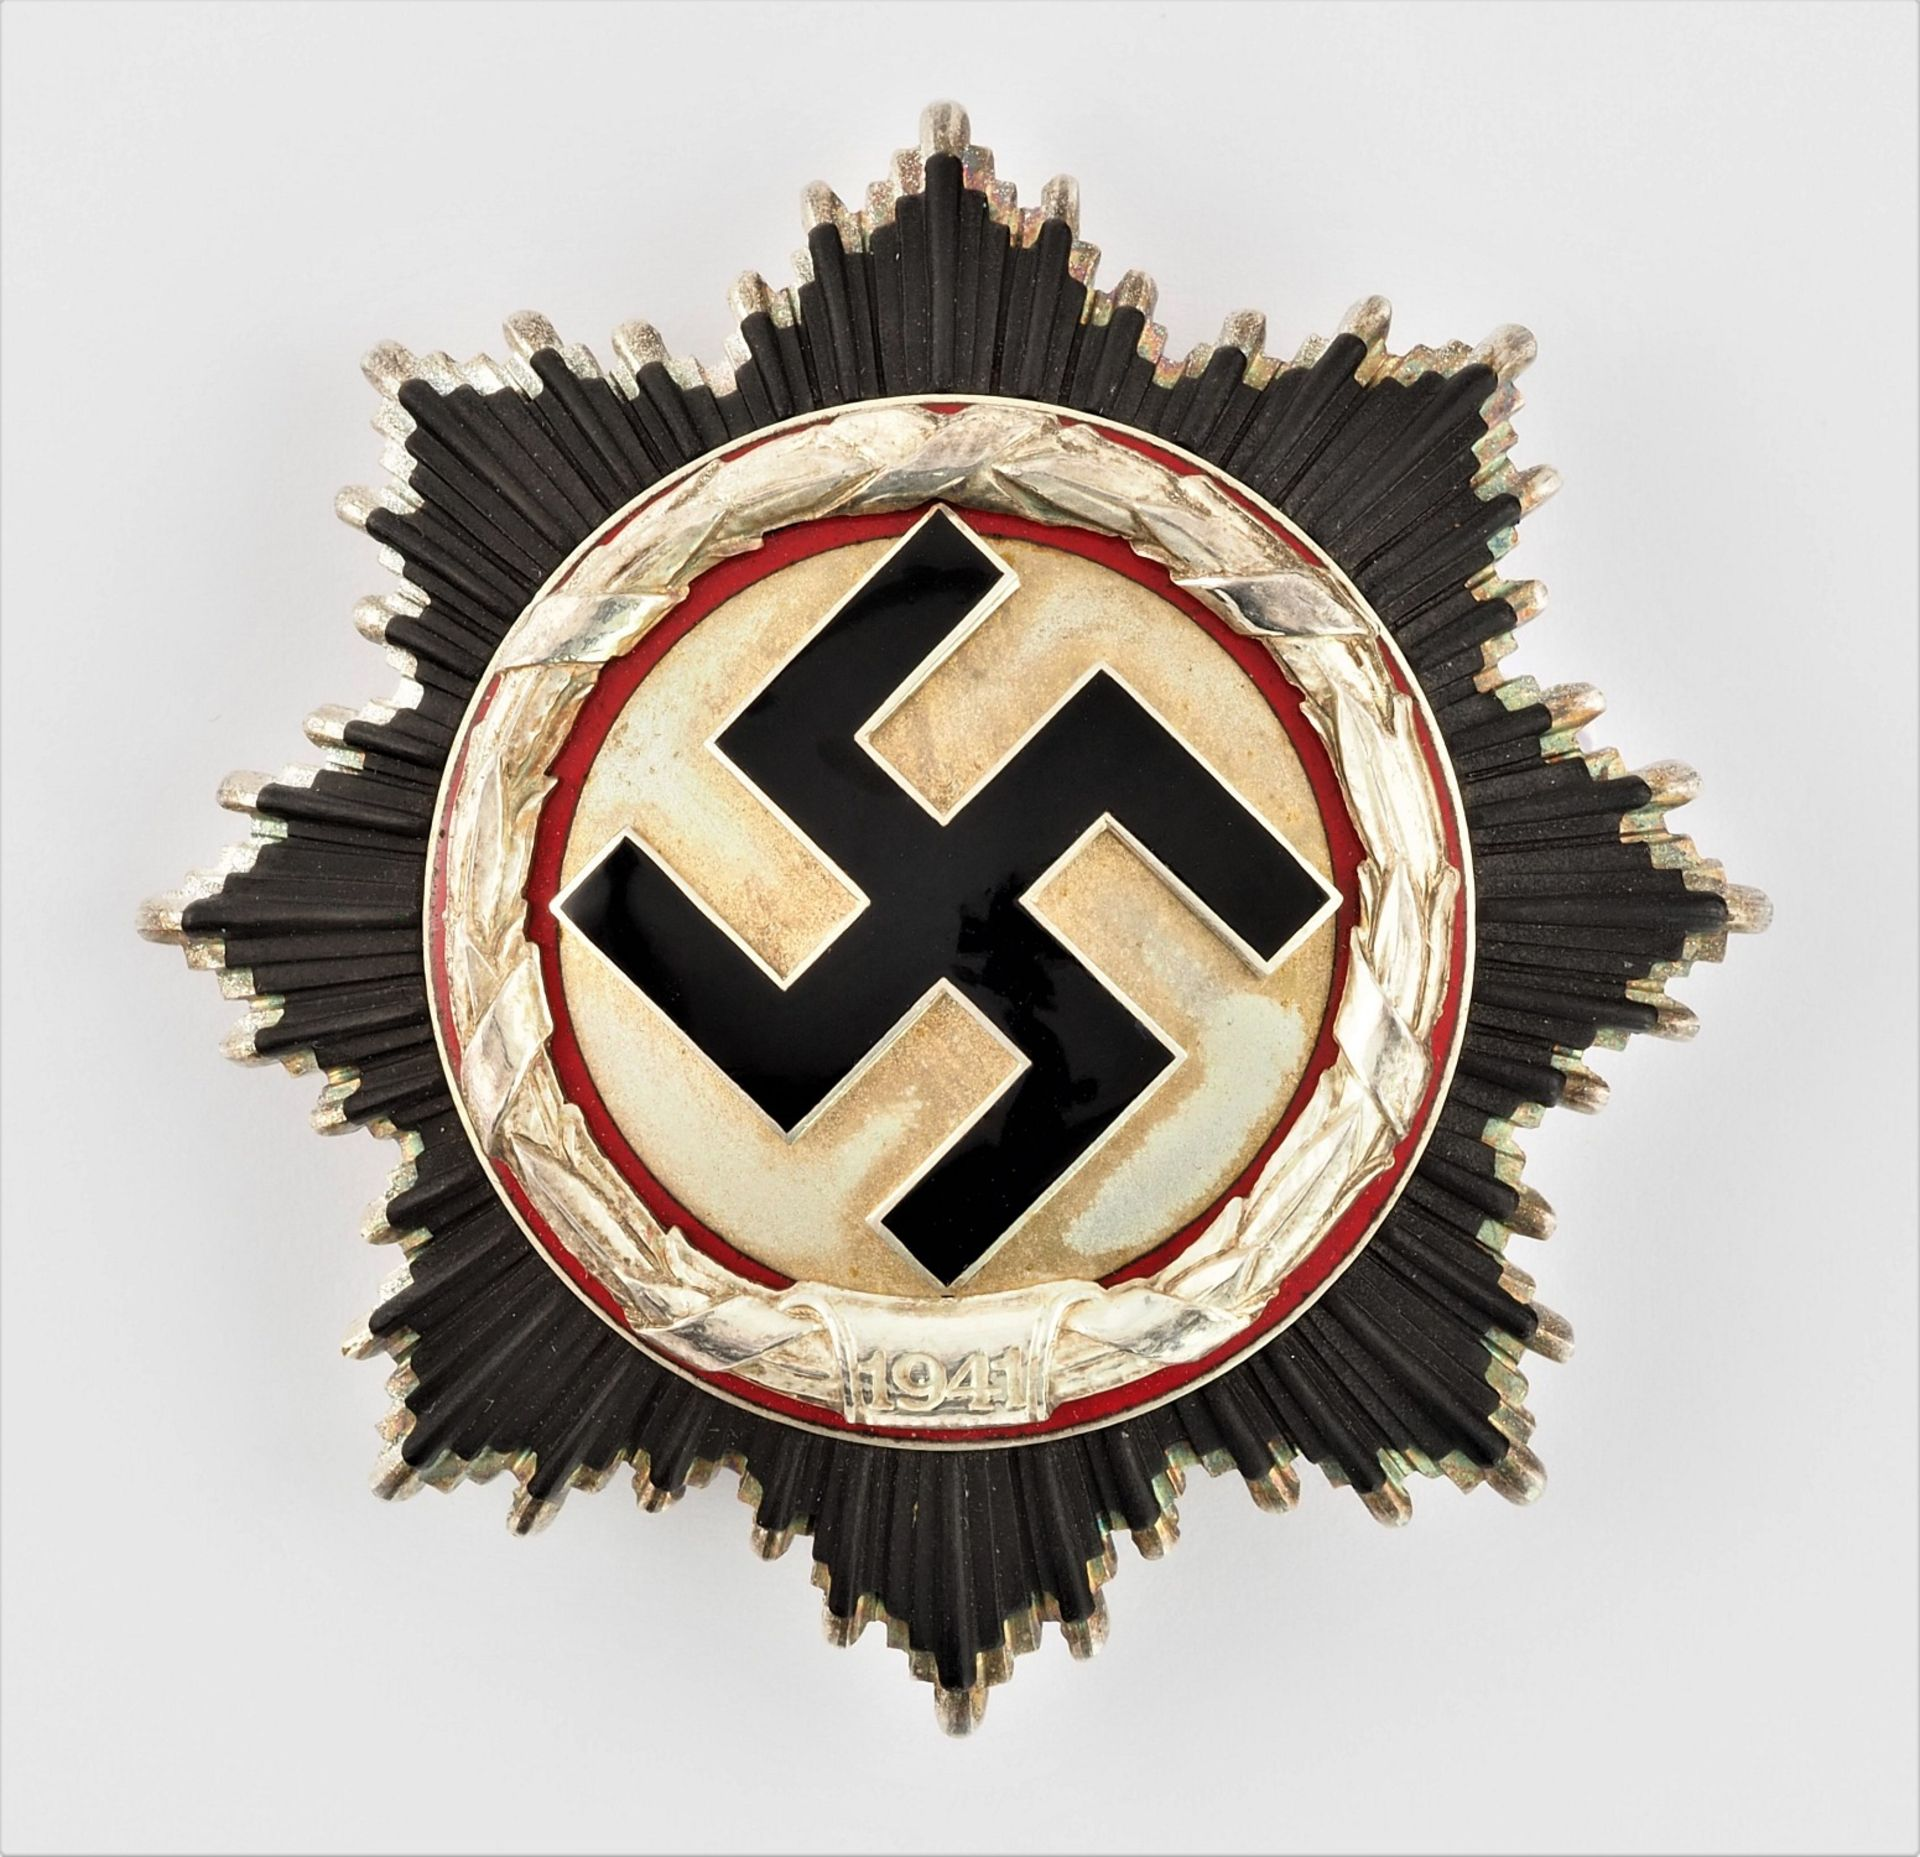 World War 2, Third Reich, Medals & Decorations Legacy: Commanding General of the Luftwaffe (Wehrmac - Image 3 of 27